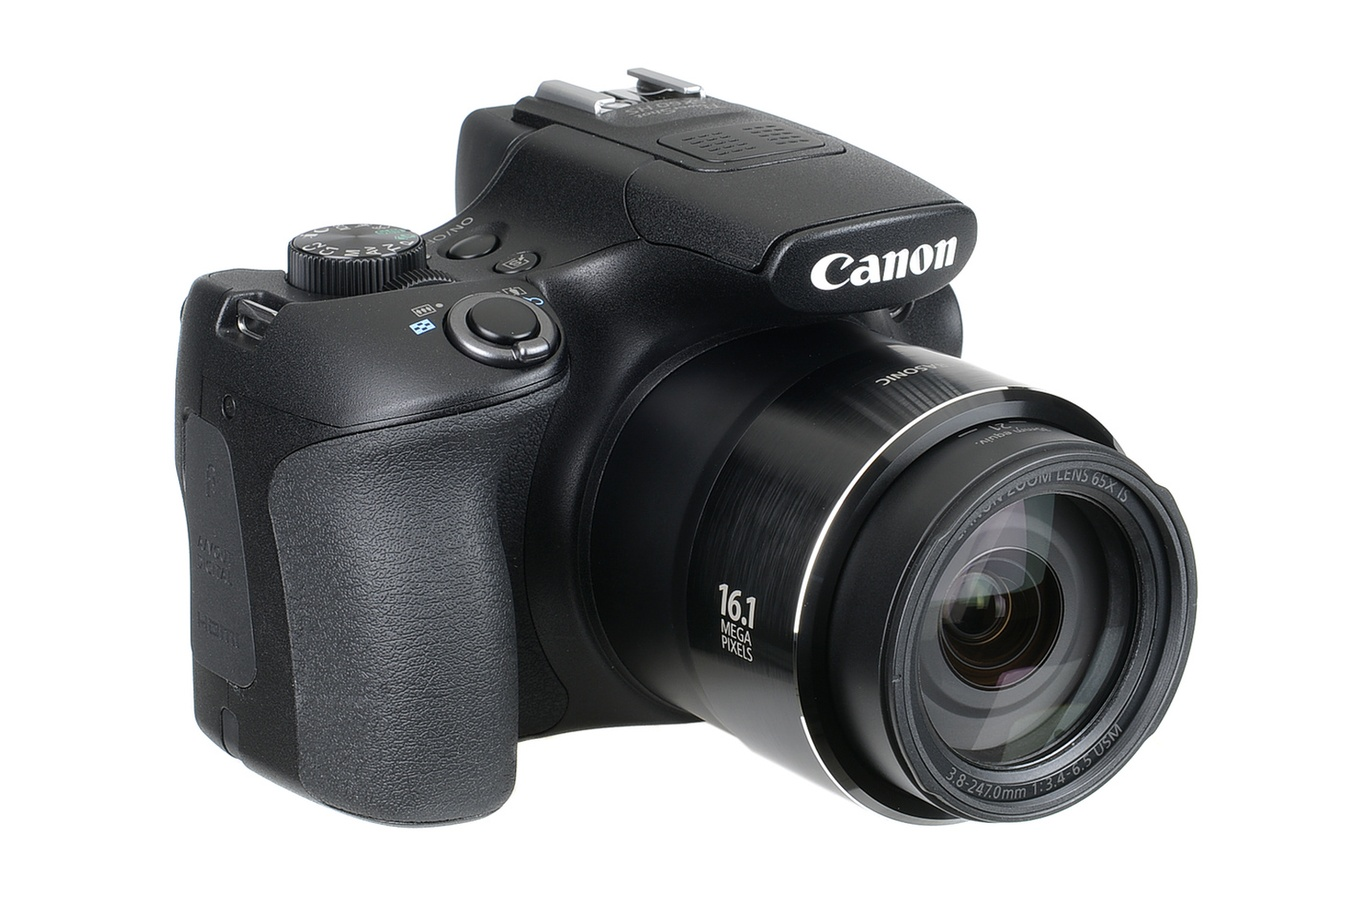 Appareil photo bridge Canon SX60 HS BLACK